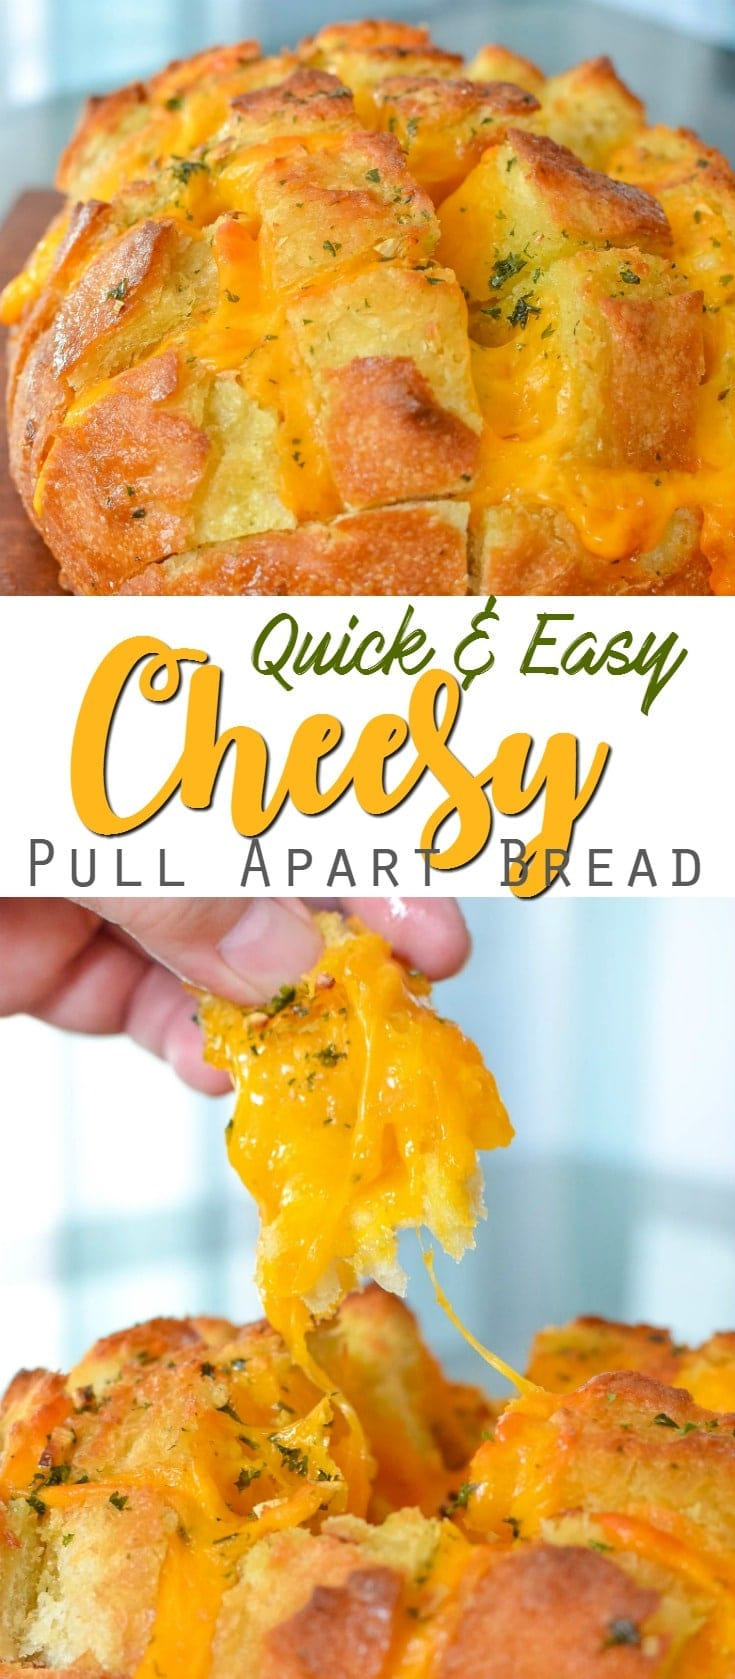 quick and easy cheesy pull apart bread recipe